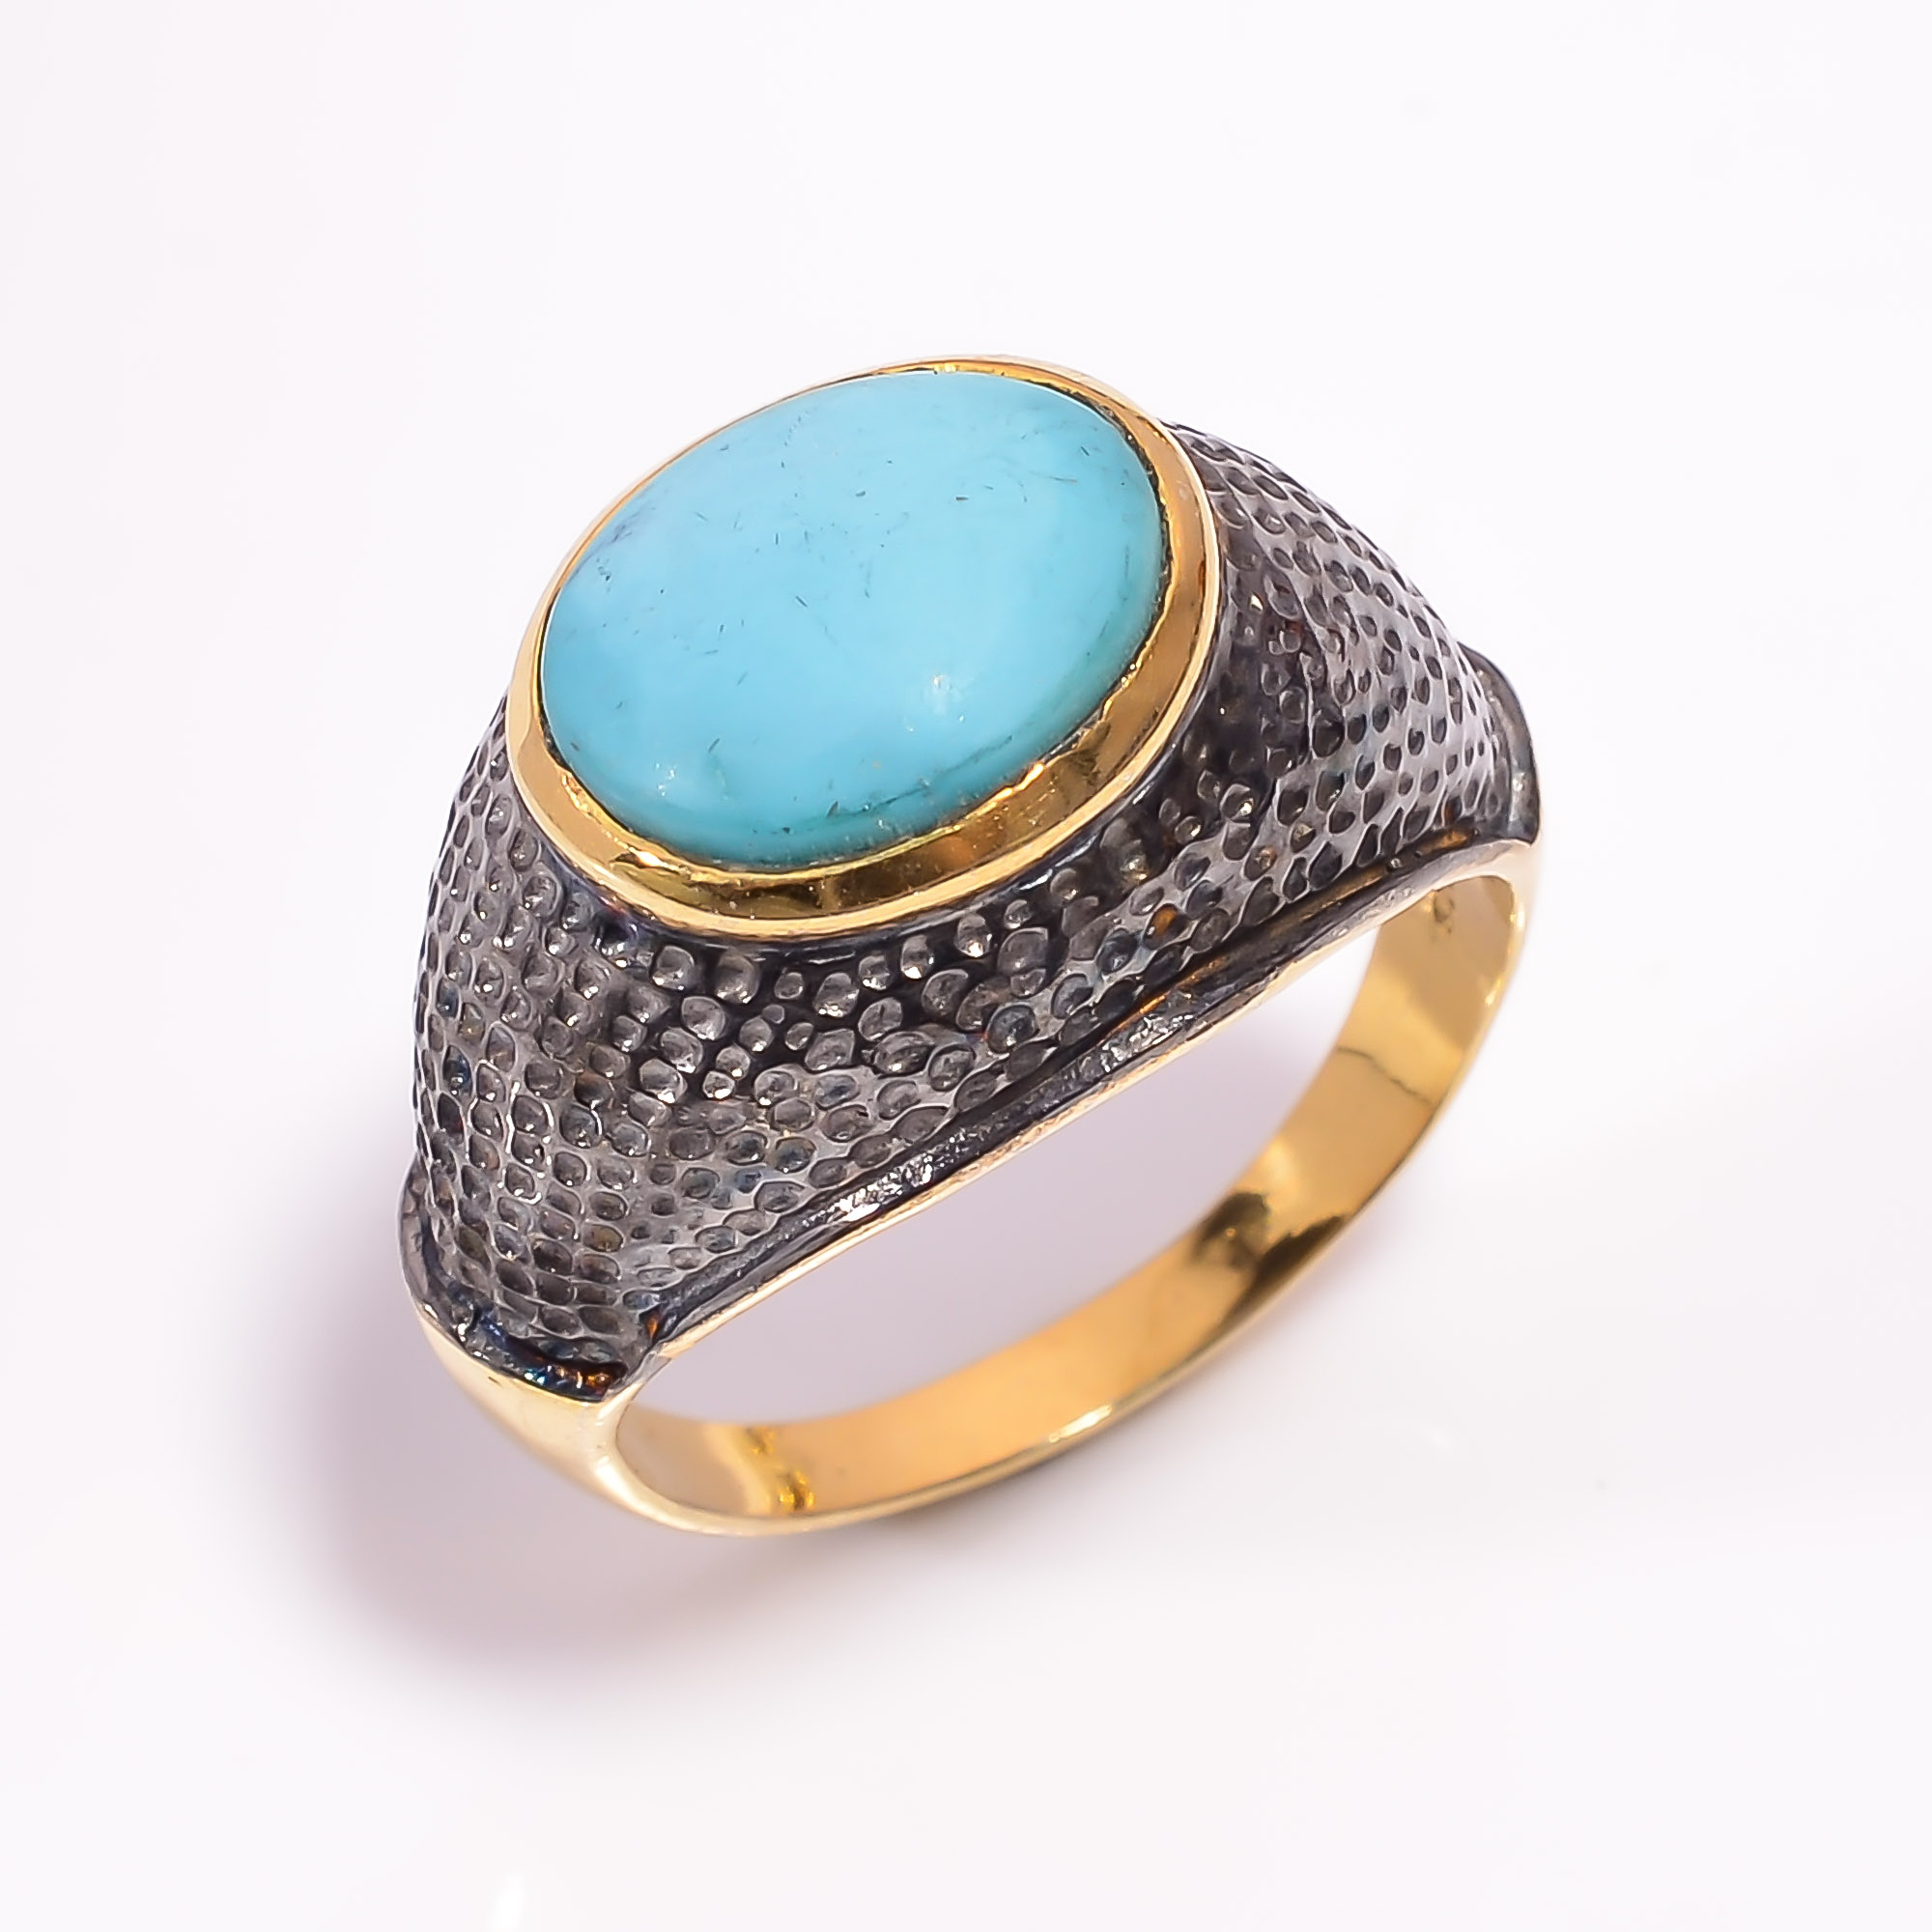 925 Sterling Silver Gold Plated & Black Rhodium Two Tone Turquoise Ring Size US 9.25